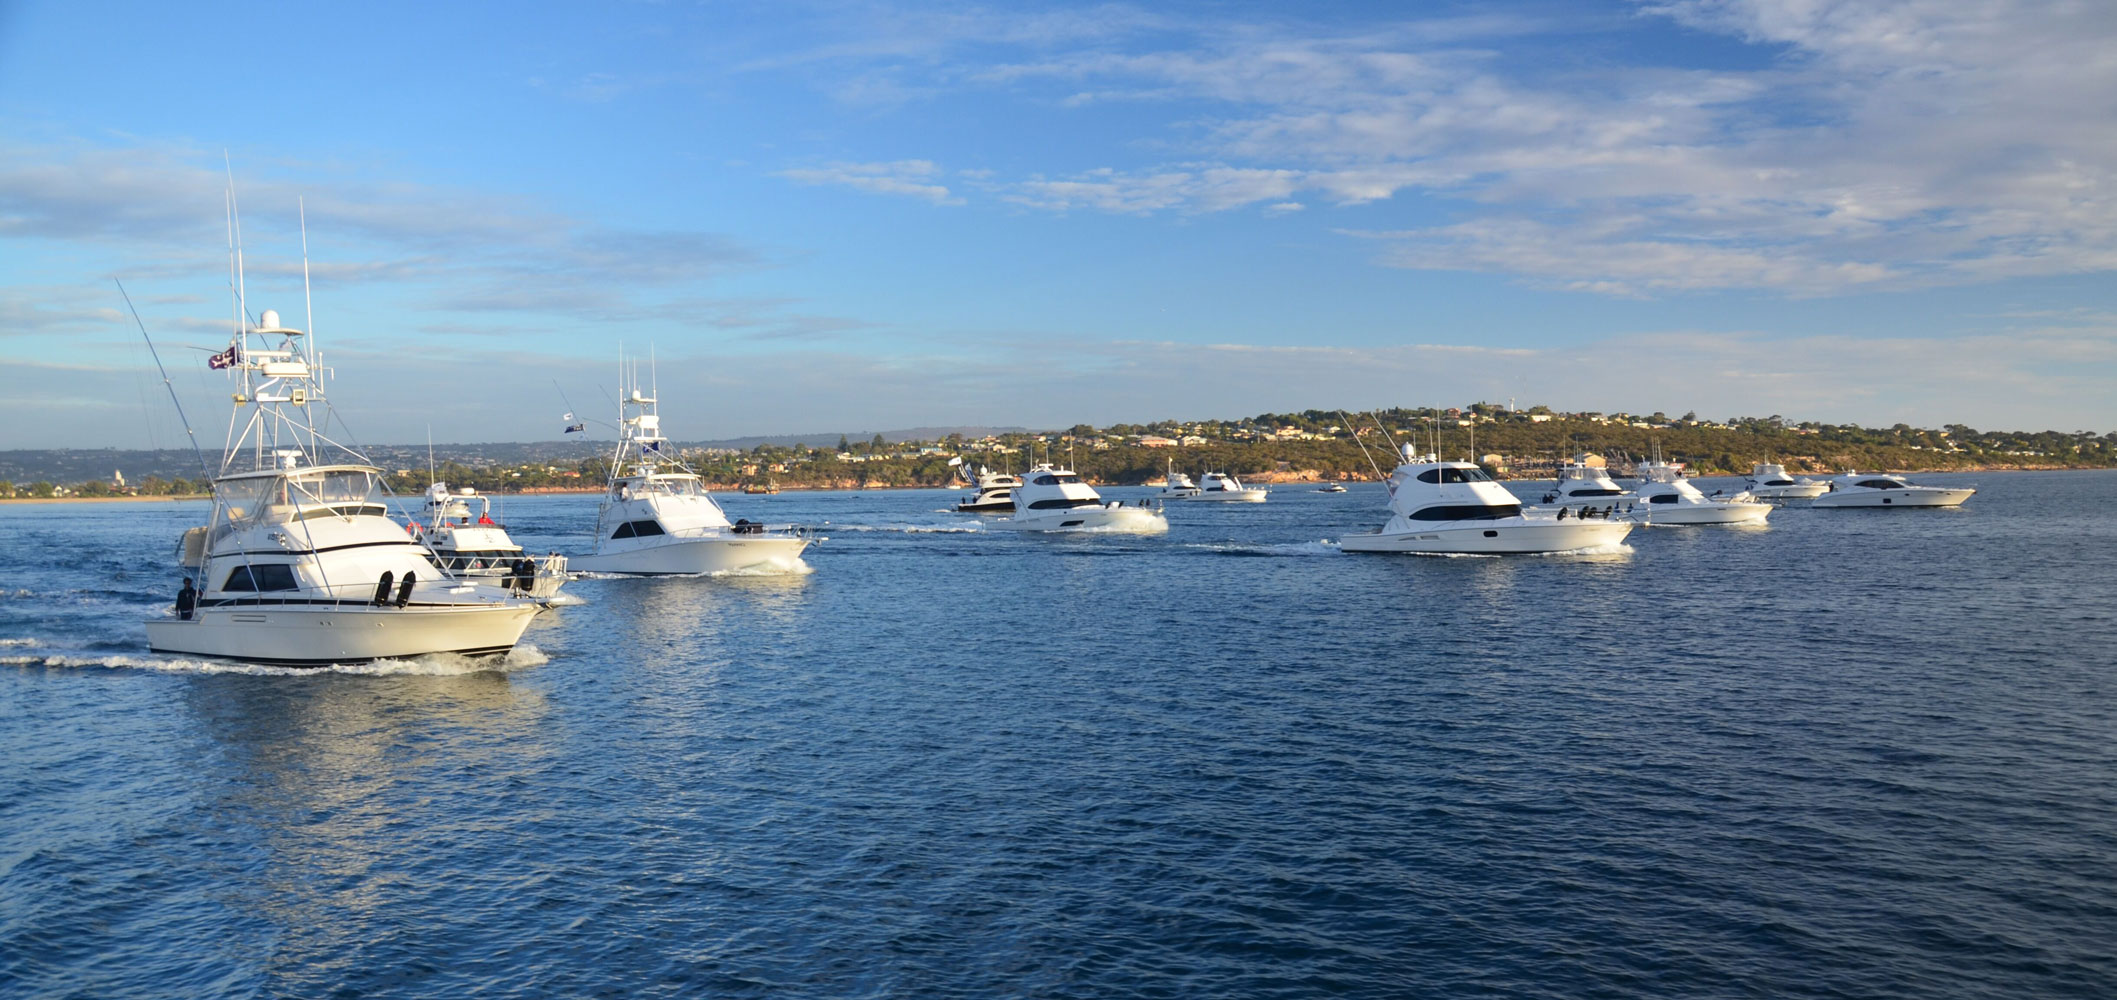 Ready to fish - the line-up of competing boats in the 2018 Riviera Port Lincoln Tuna Classic get set for the starter's horn and the spring to Memory Cove